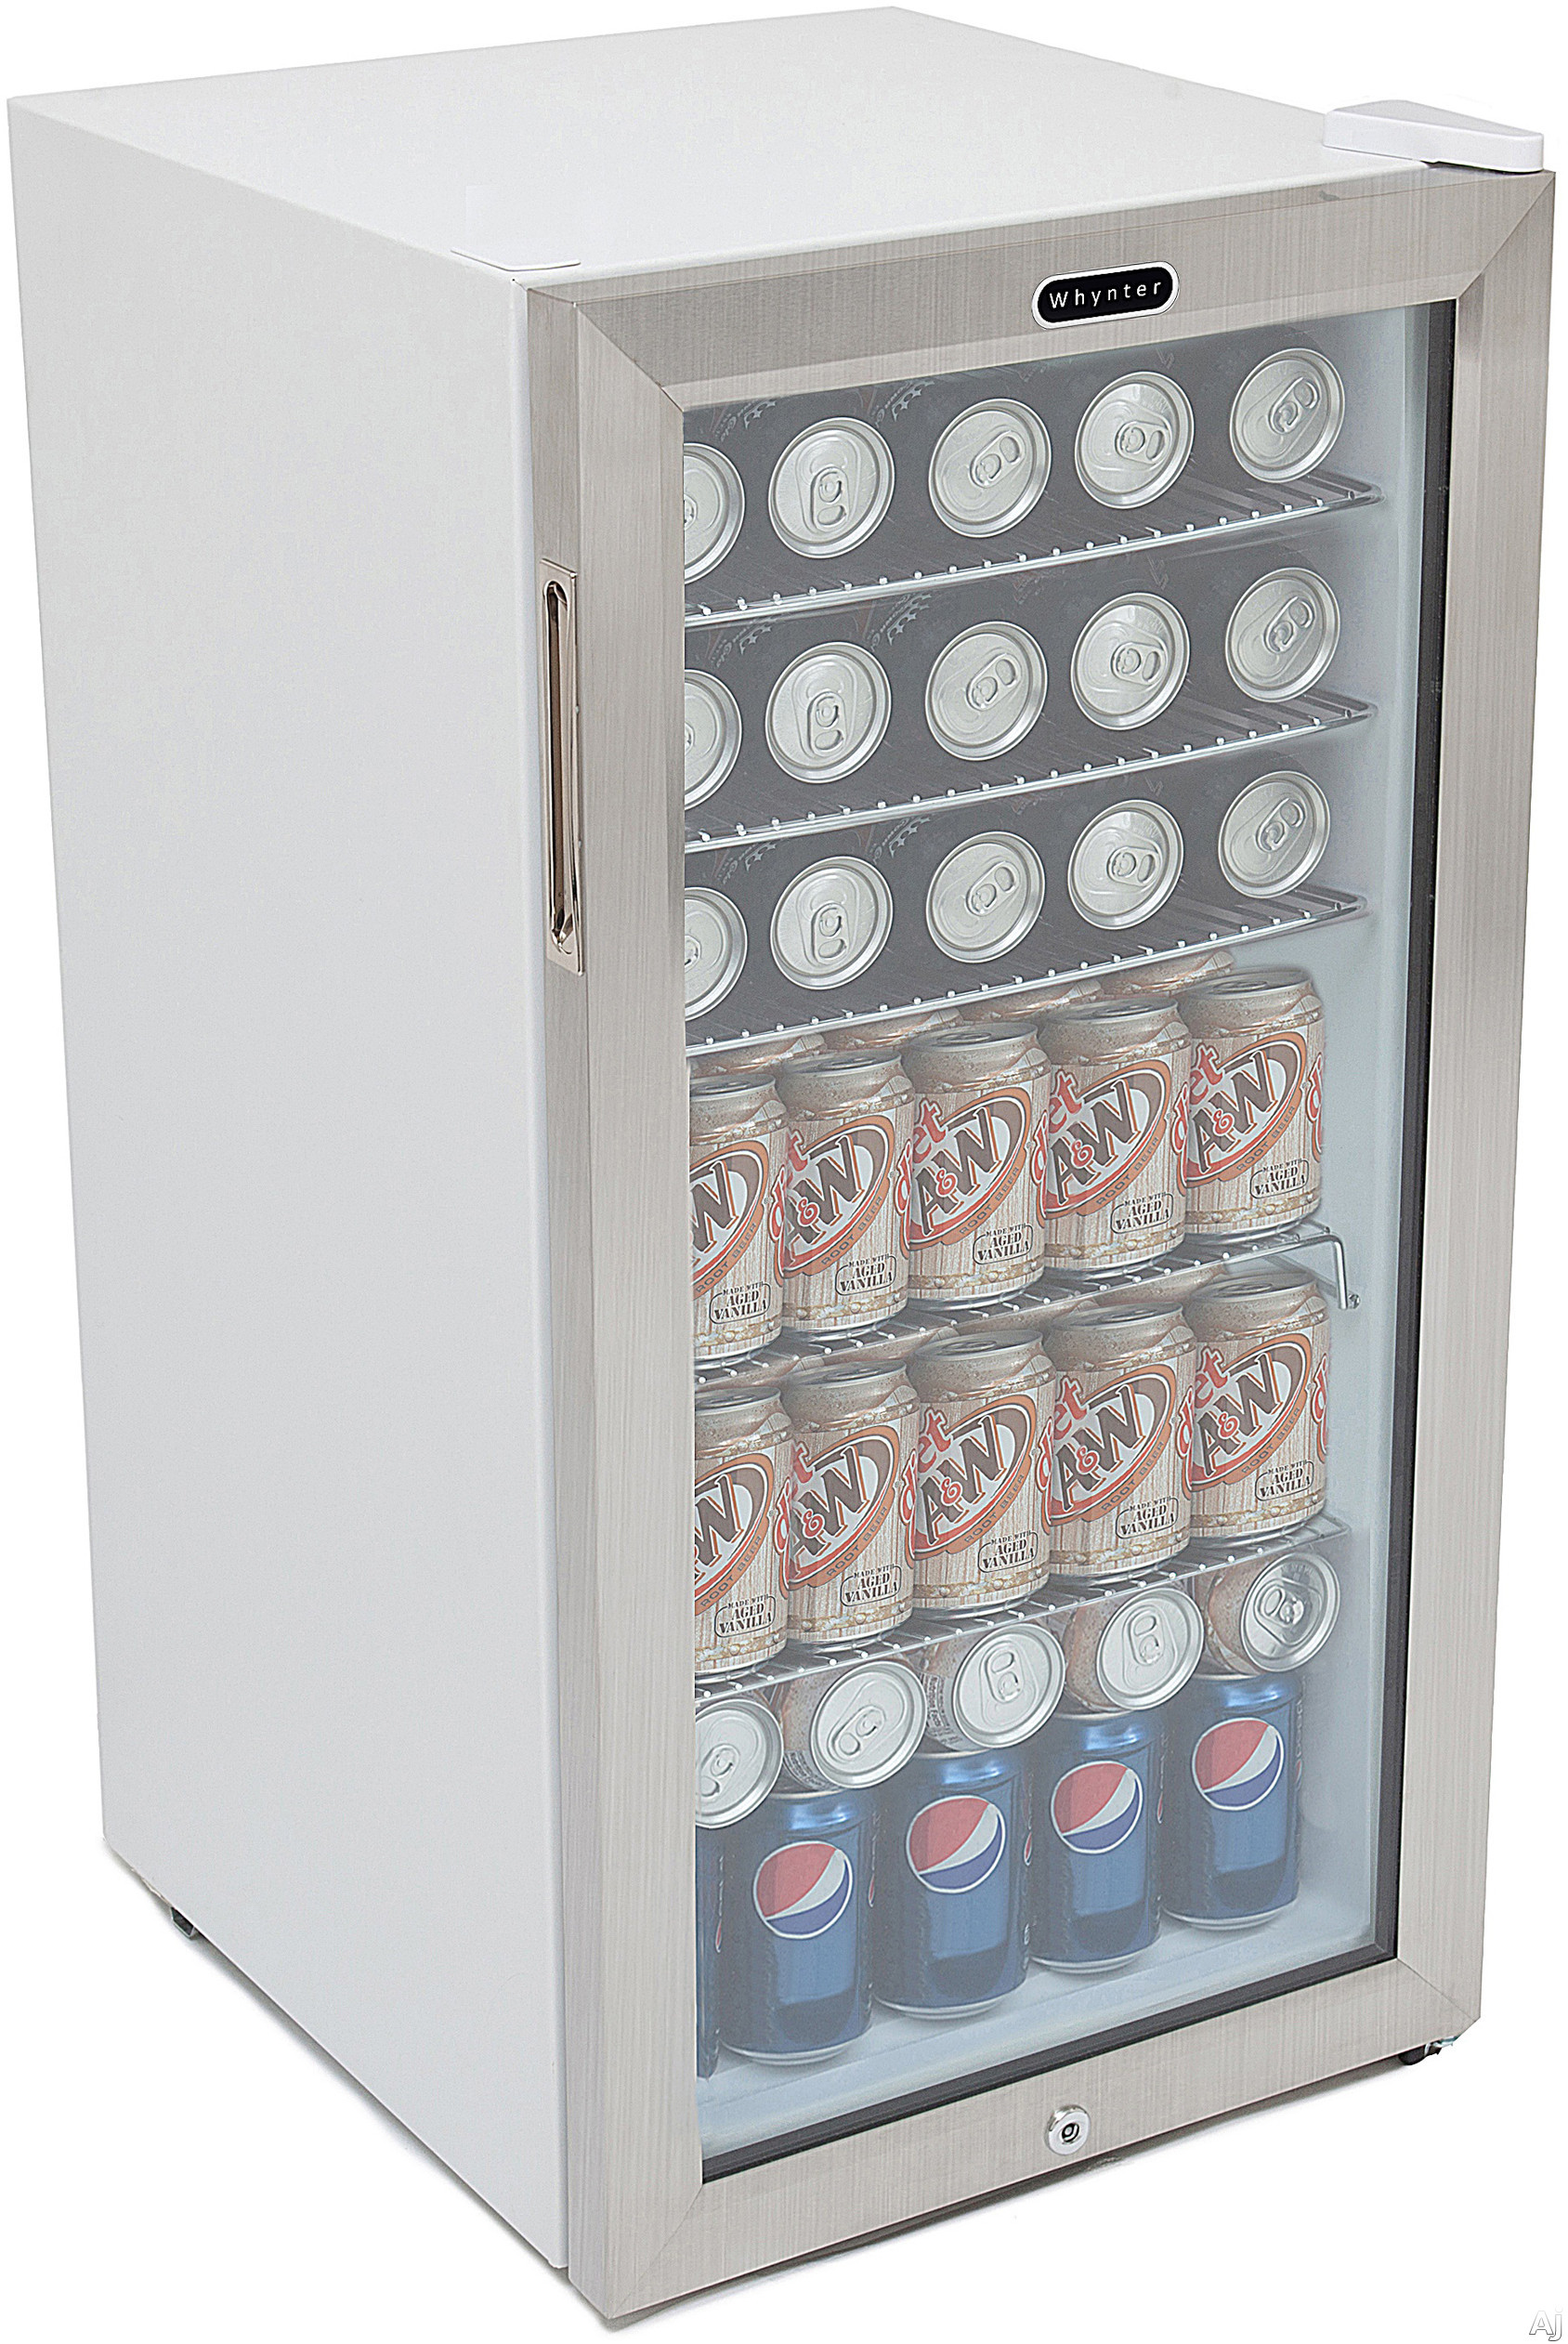 Whynter BR128WS 17 Inch Beverage Refrigerator with 120 Can Capacity, Powerful Compressor Cooling, 5 Side-Out Shelves, Cylinder Lock and Interior LED Light